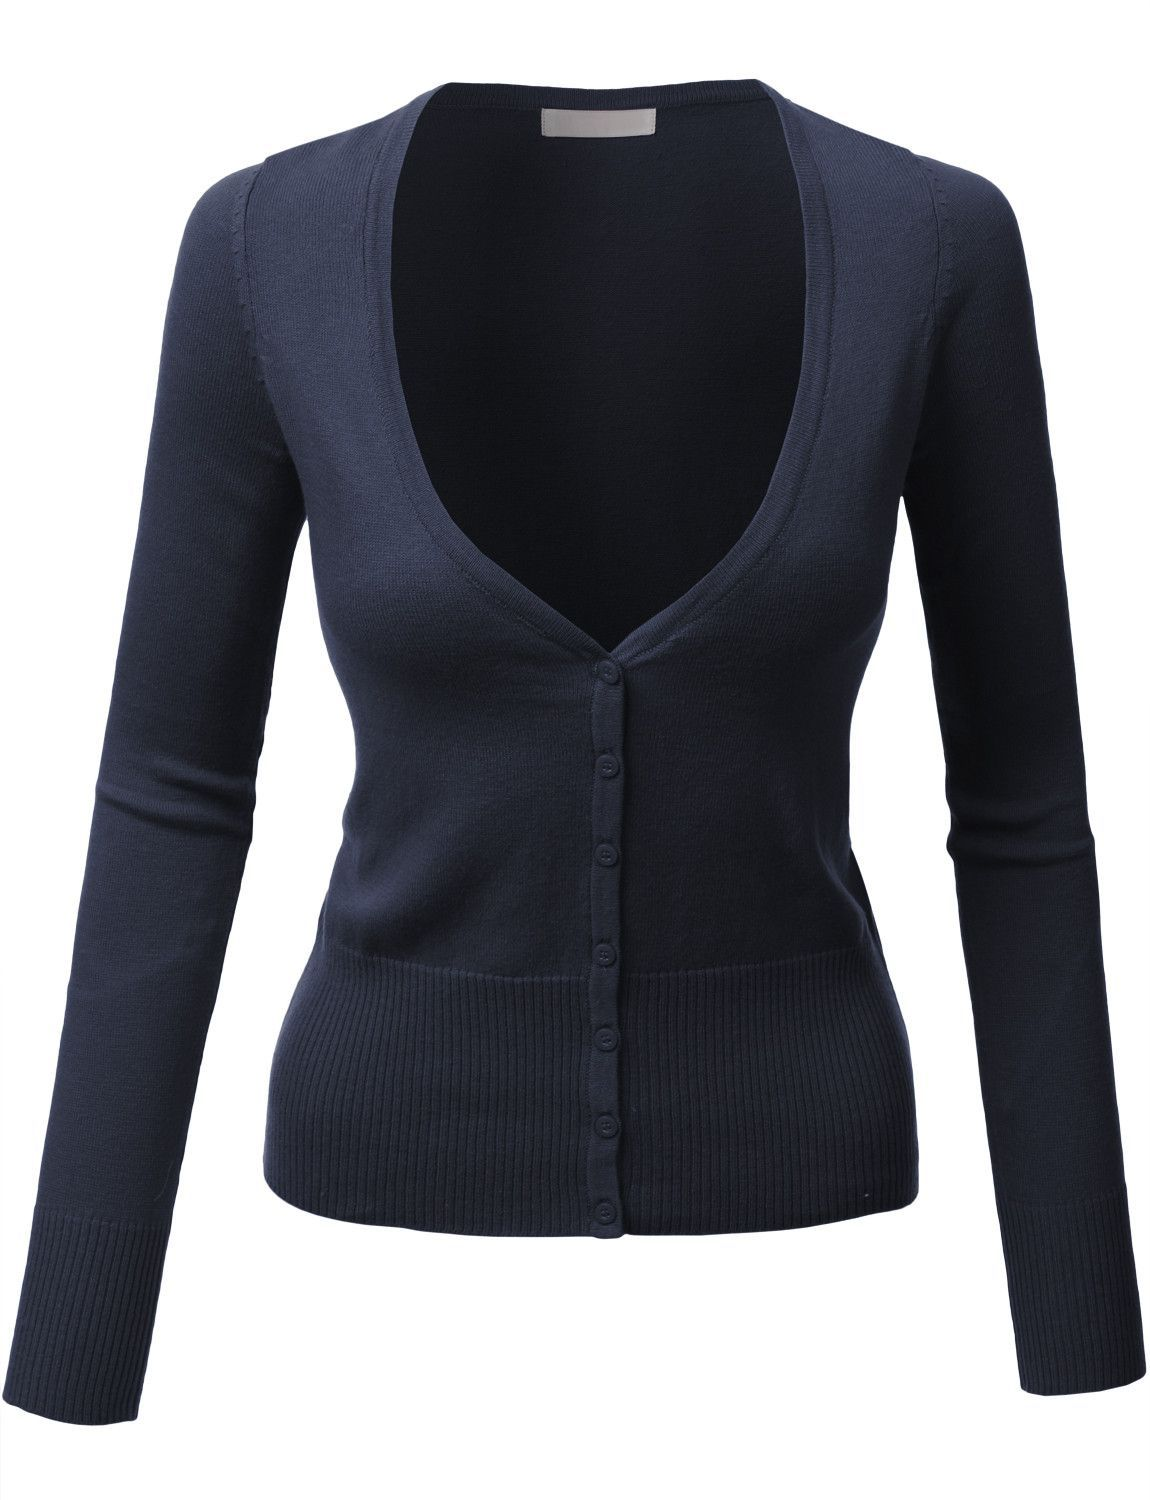 Womens Lightweight Long Sleeve V Neck Knit Cardigan with Stretch ...